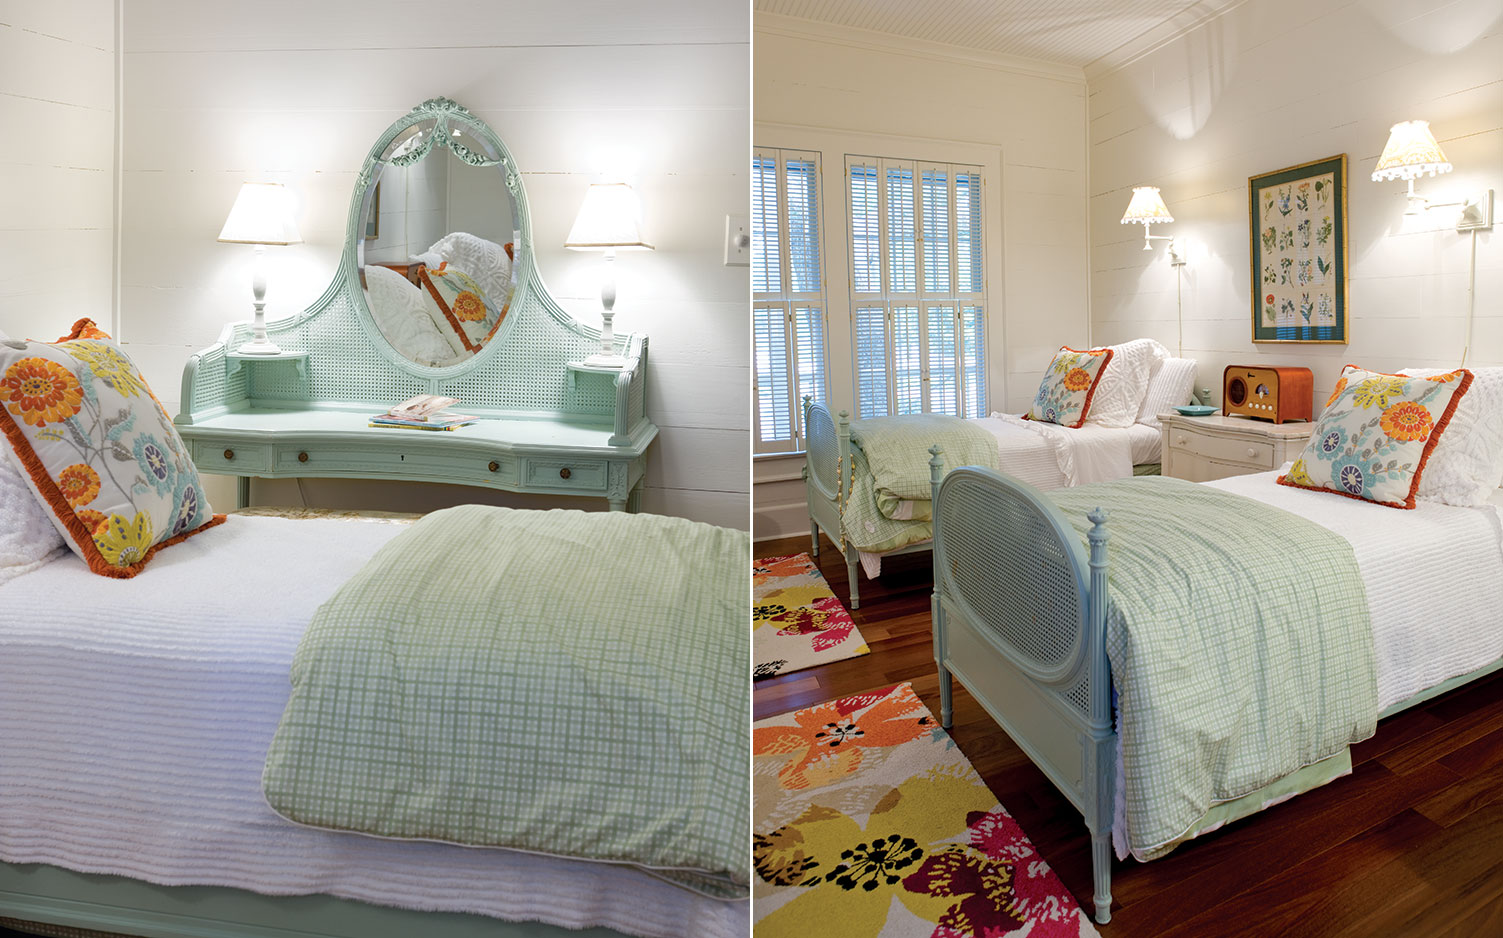 pictures of a guest bedroom with blue and green furniture.